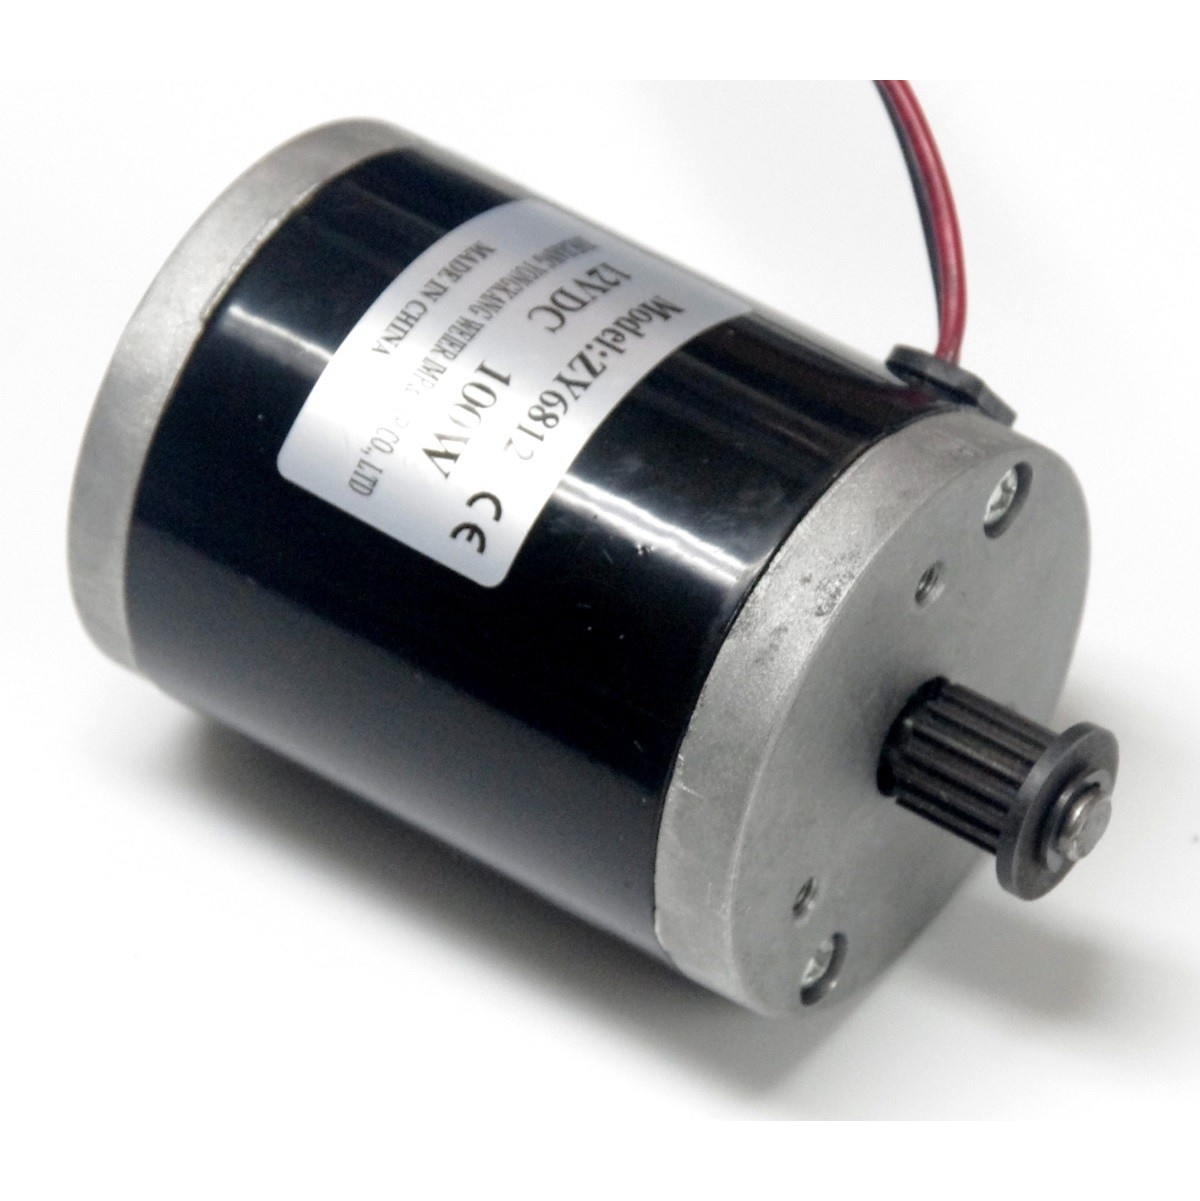 Dc 12v 100w 2750 rpm electric motor belt drive motor for Low speed dc motor 0 5 6 volt